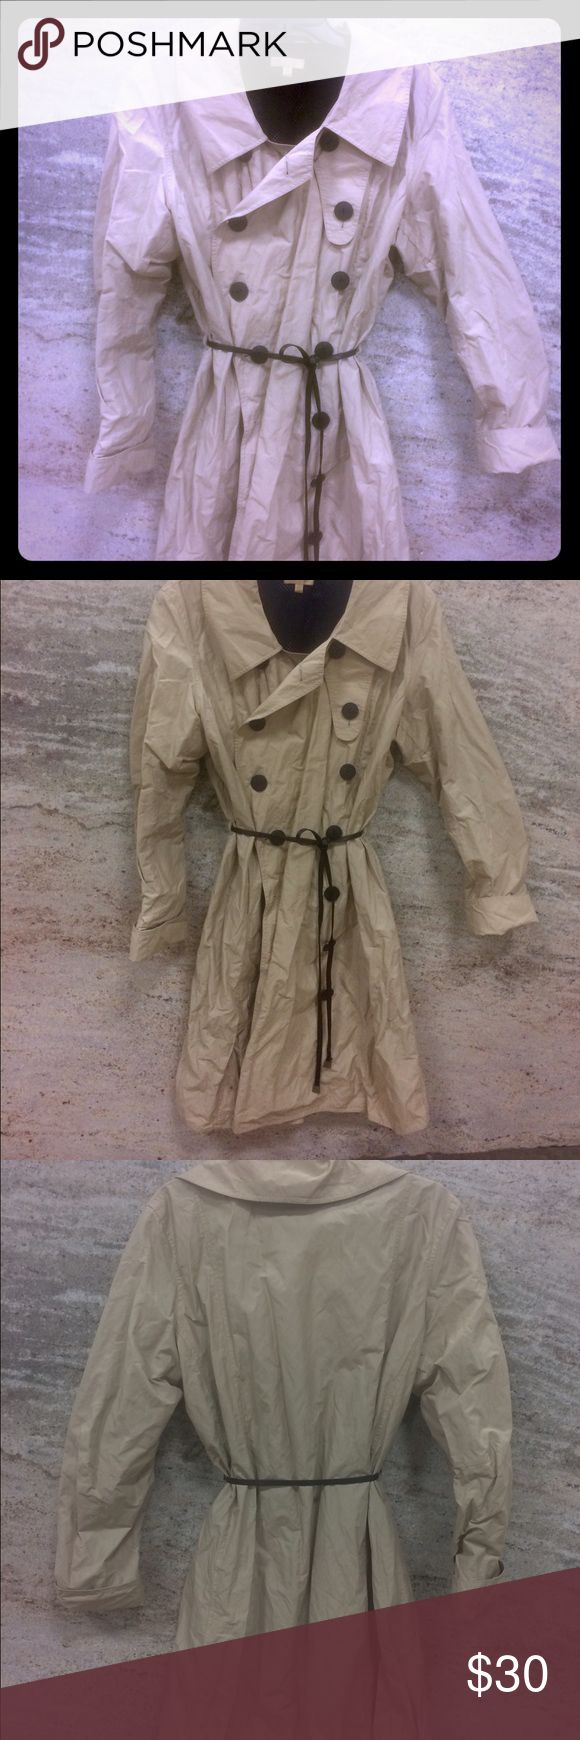 Wilsons leather Trench-coat Wilsons leather Trench-coat classic double breasted letter belt. Never been worn big on me Wilsons Leather Jackets & Coats Trench Coats